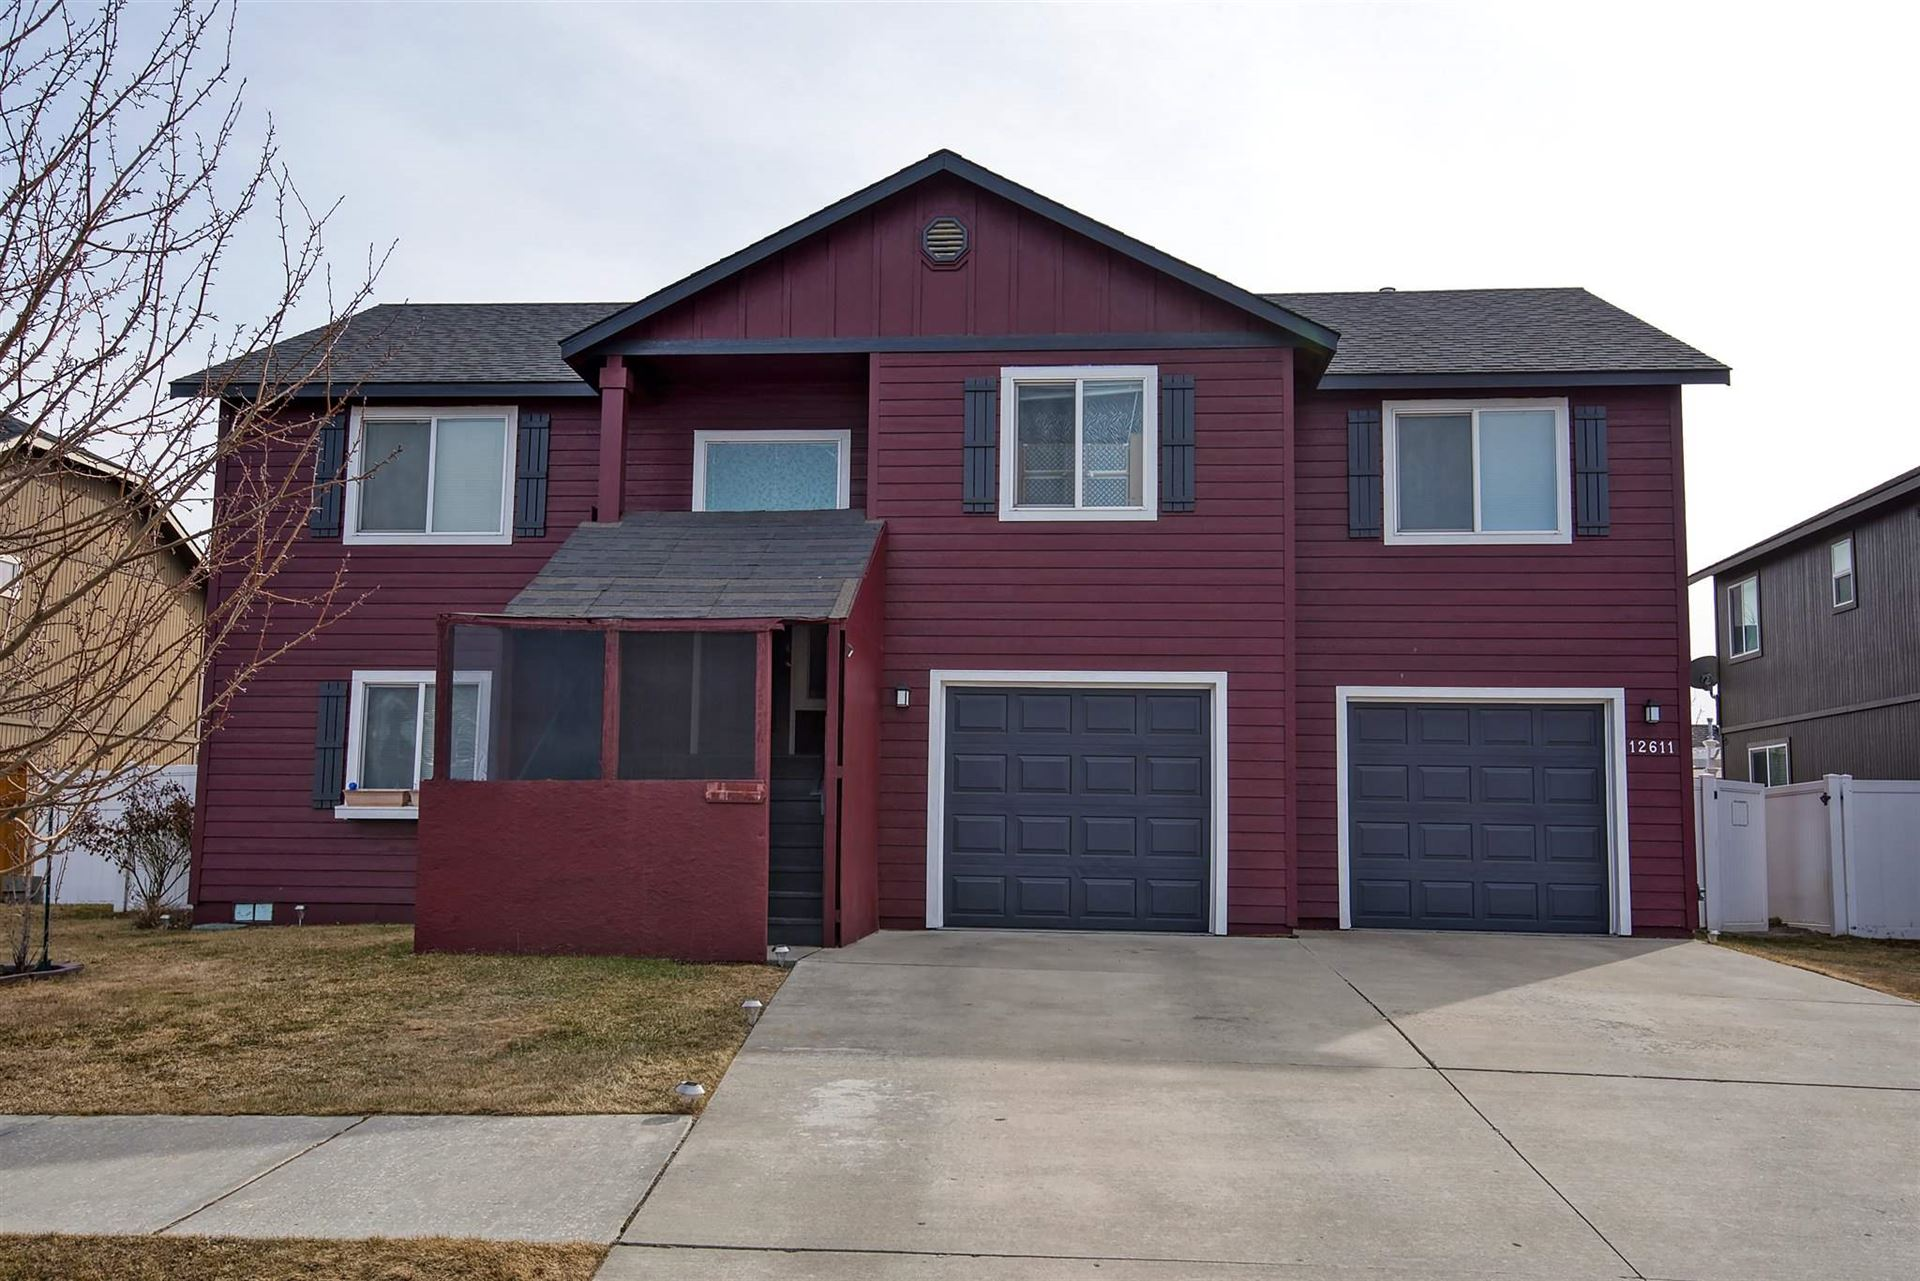 12611 W Pacific Ct, Airway Heights, WA 99001-5094 - #: 202112423